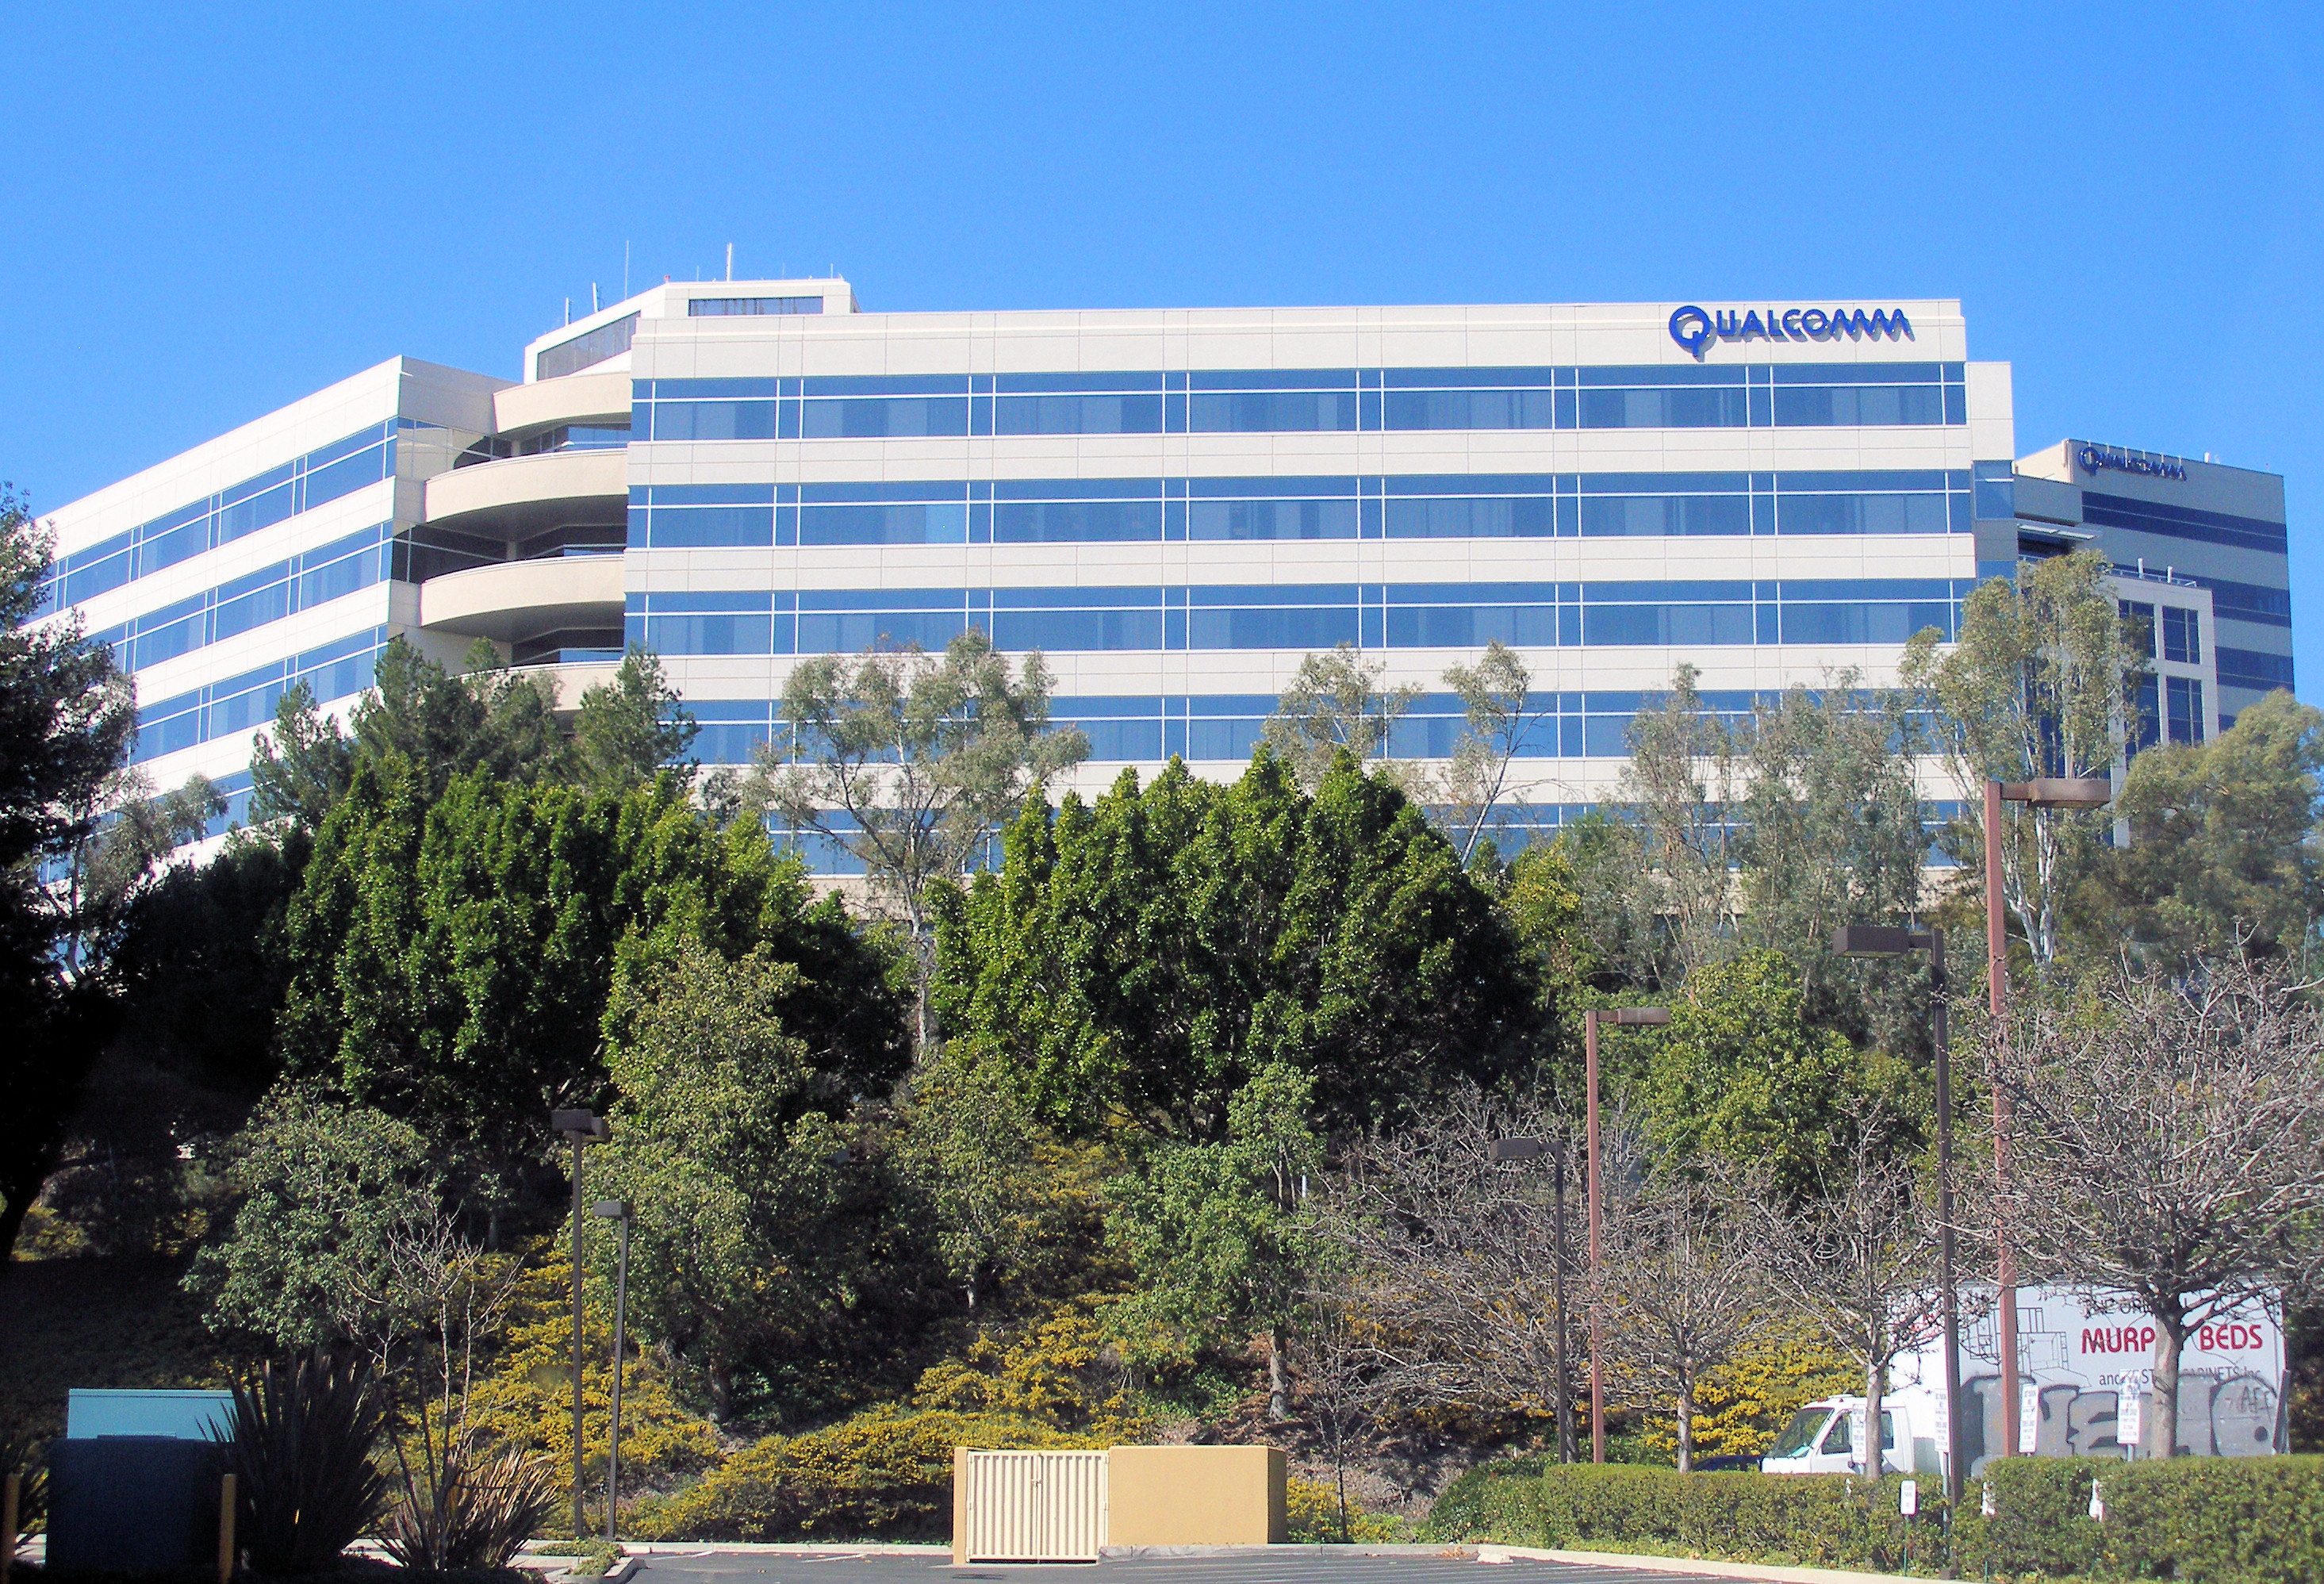 Federal judge rules against Qualcomm in antitrust lawsuit